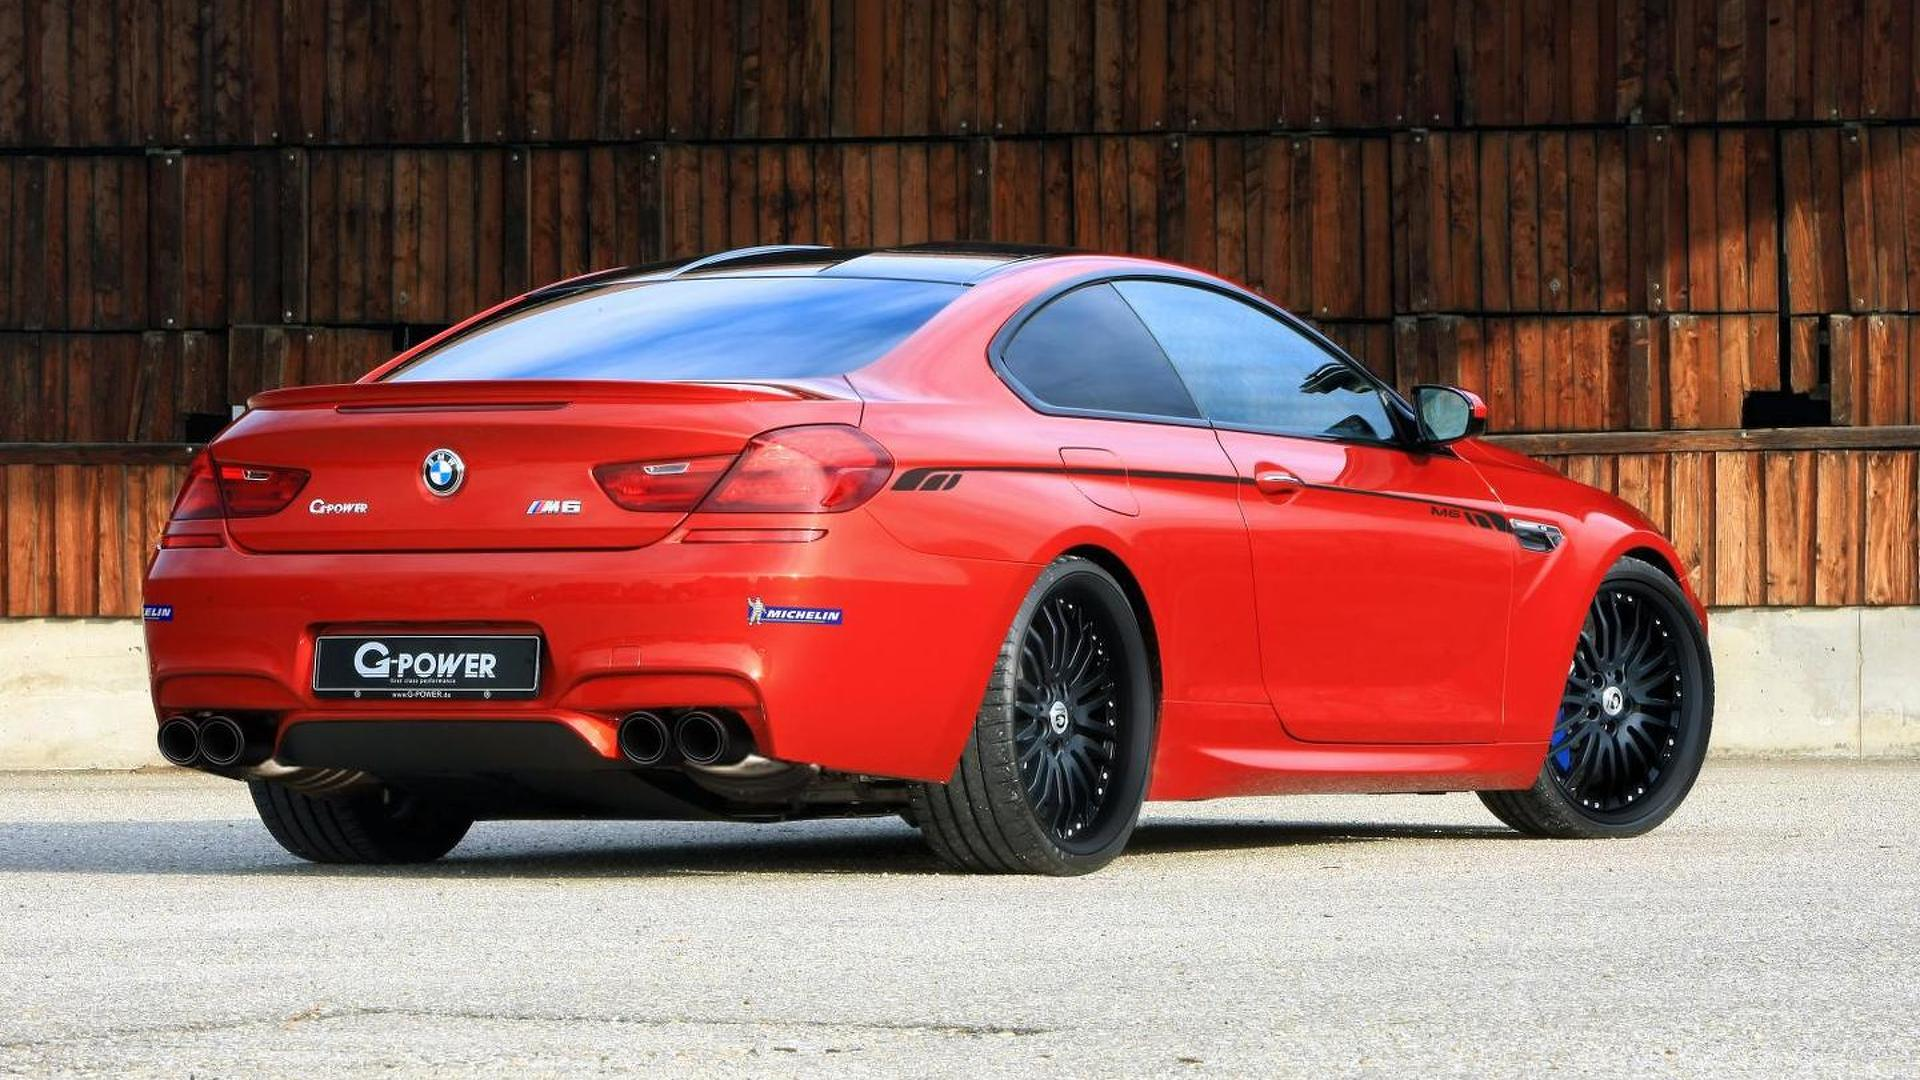 G Power Details Bmw M6 Coupe Tuning Program